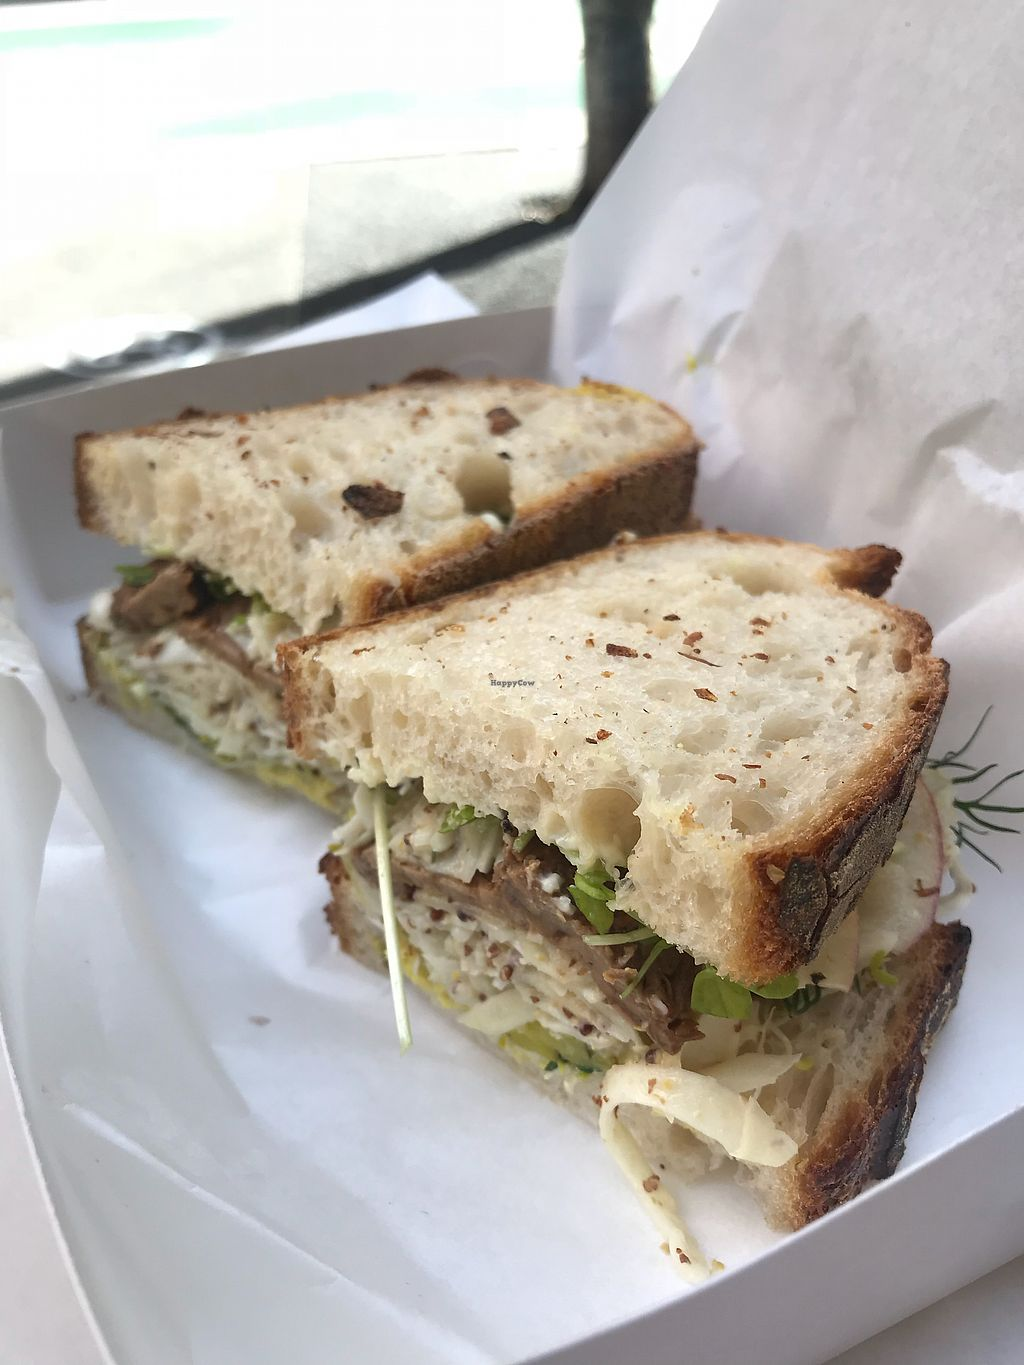 "Photo of Joe's Sandwich Bar  by <a href=""/members/profile/JessPhillippi"">JessPhillippi</a> <br/>Tempeh Rueben  <br/> February 28, 2018  - <a href='/contact/abuse/image/104399/364697'>Report</a>"